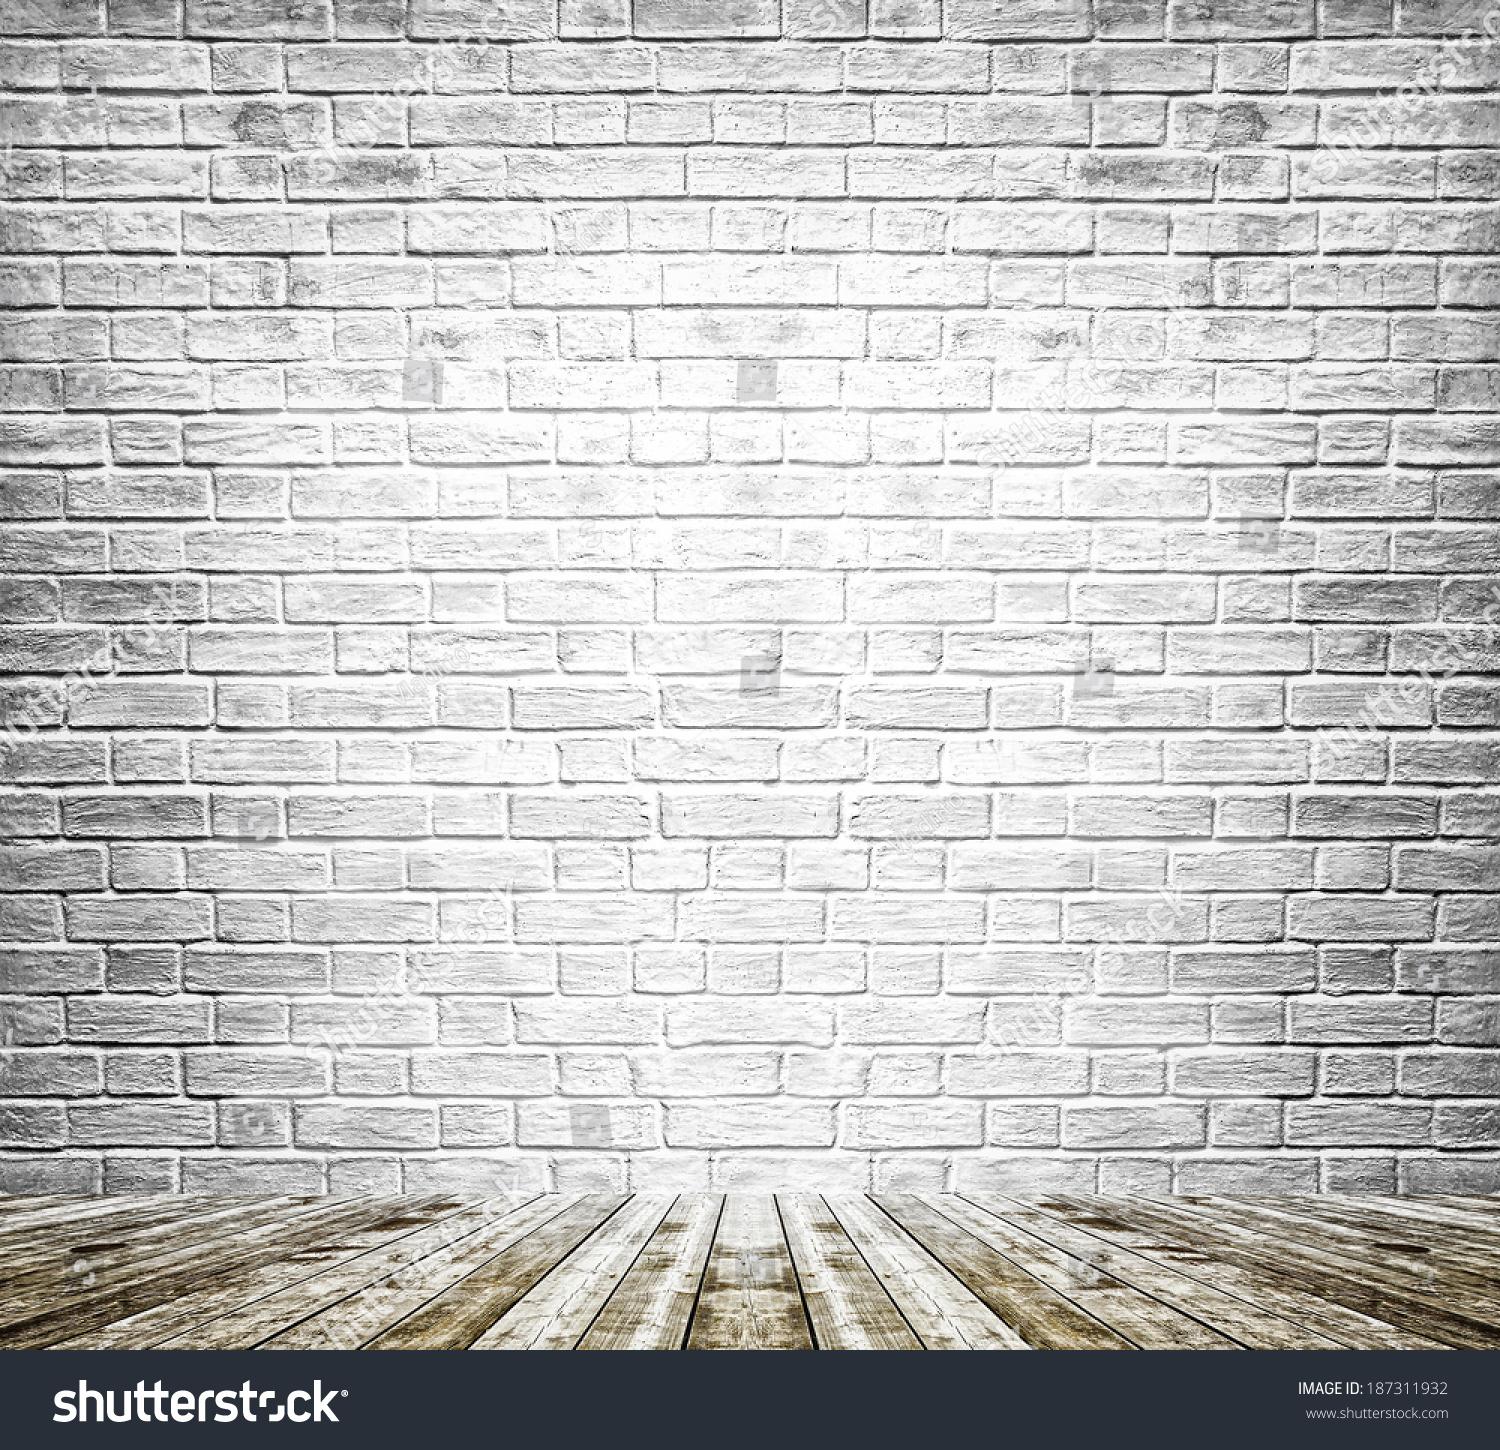 Stone And Wood Make A Dark Masculine Interior: Background Age Grungy Black White Texture Stock Photo